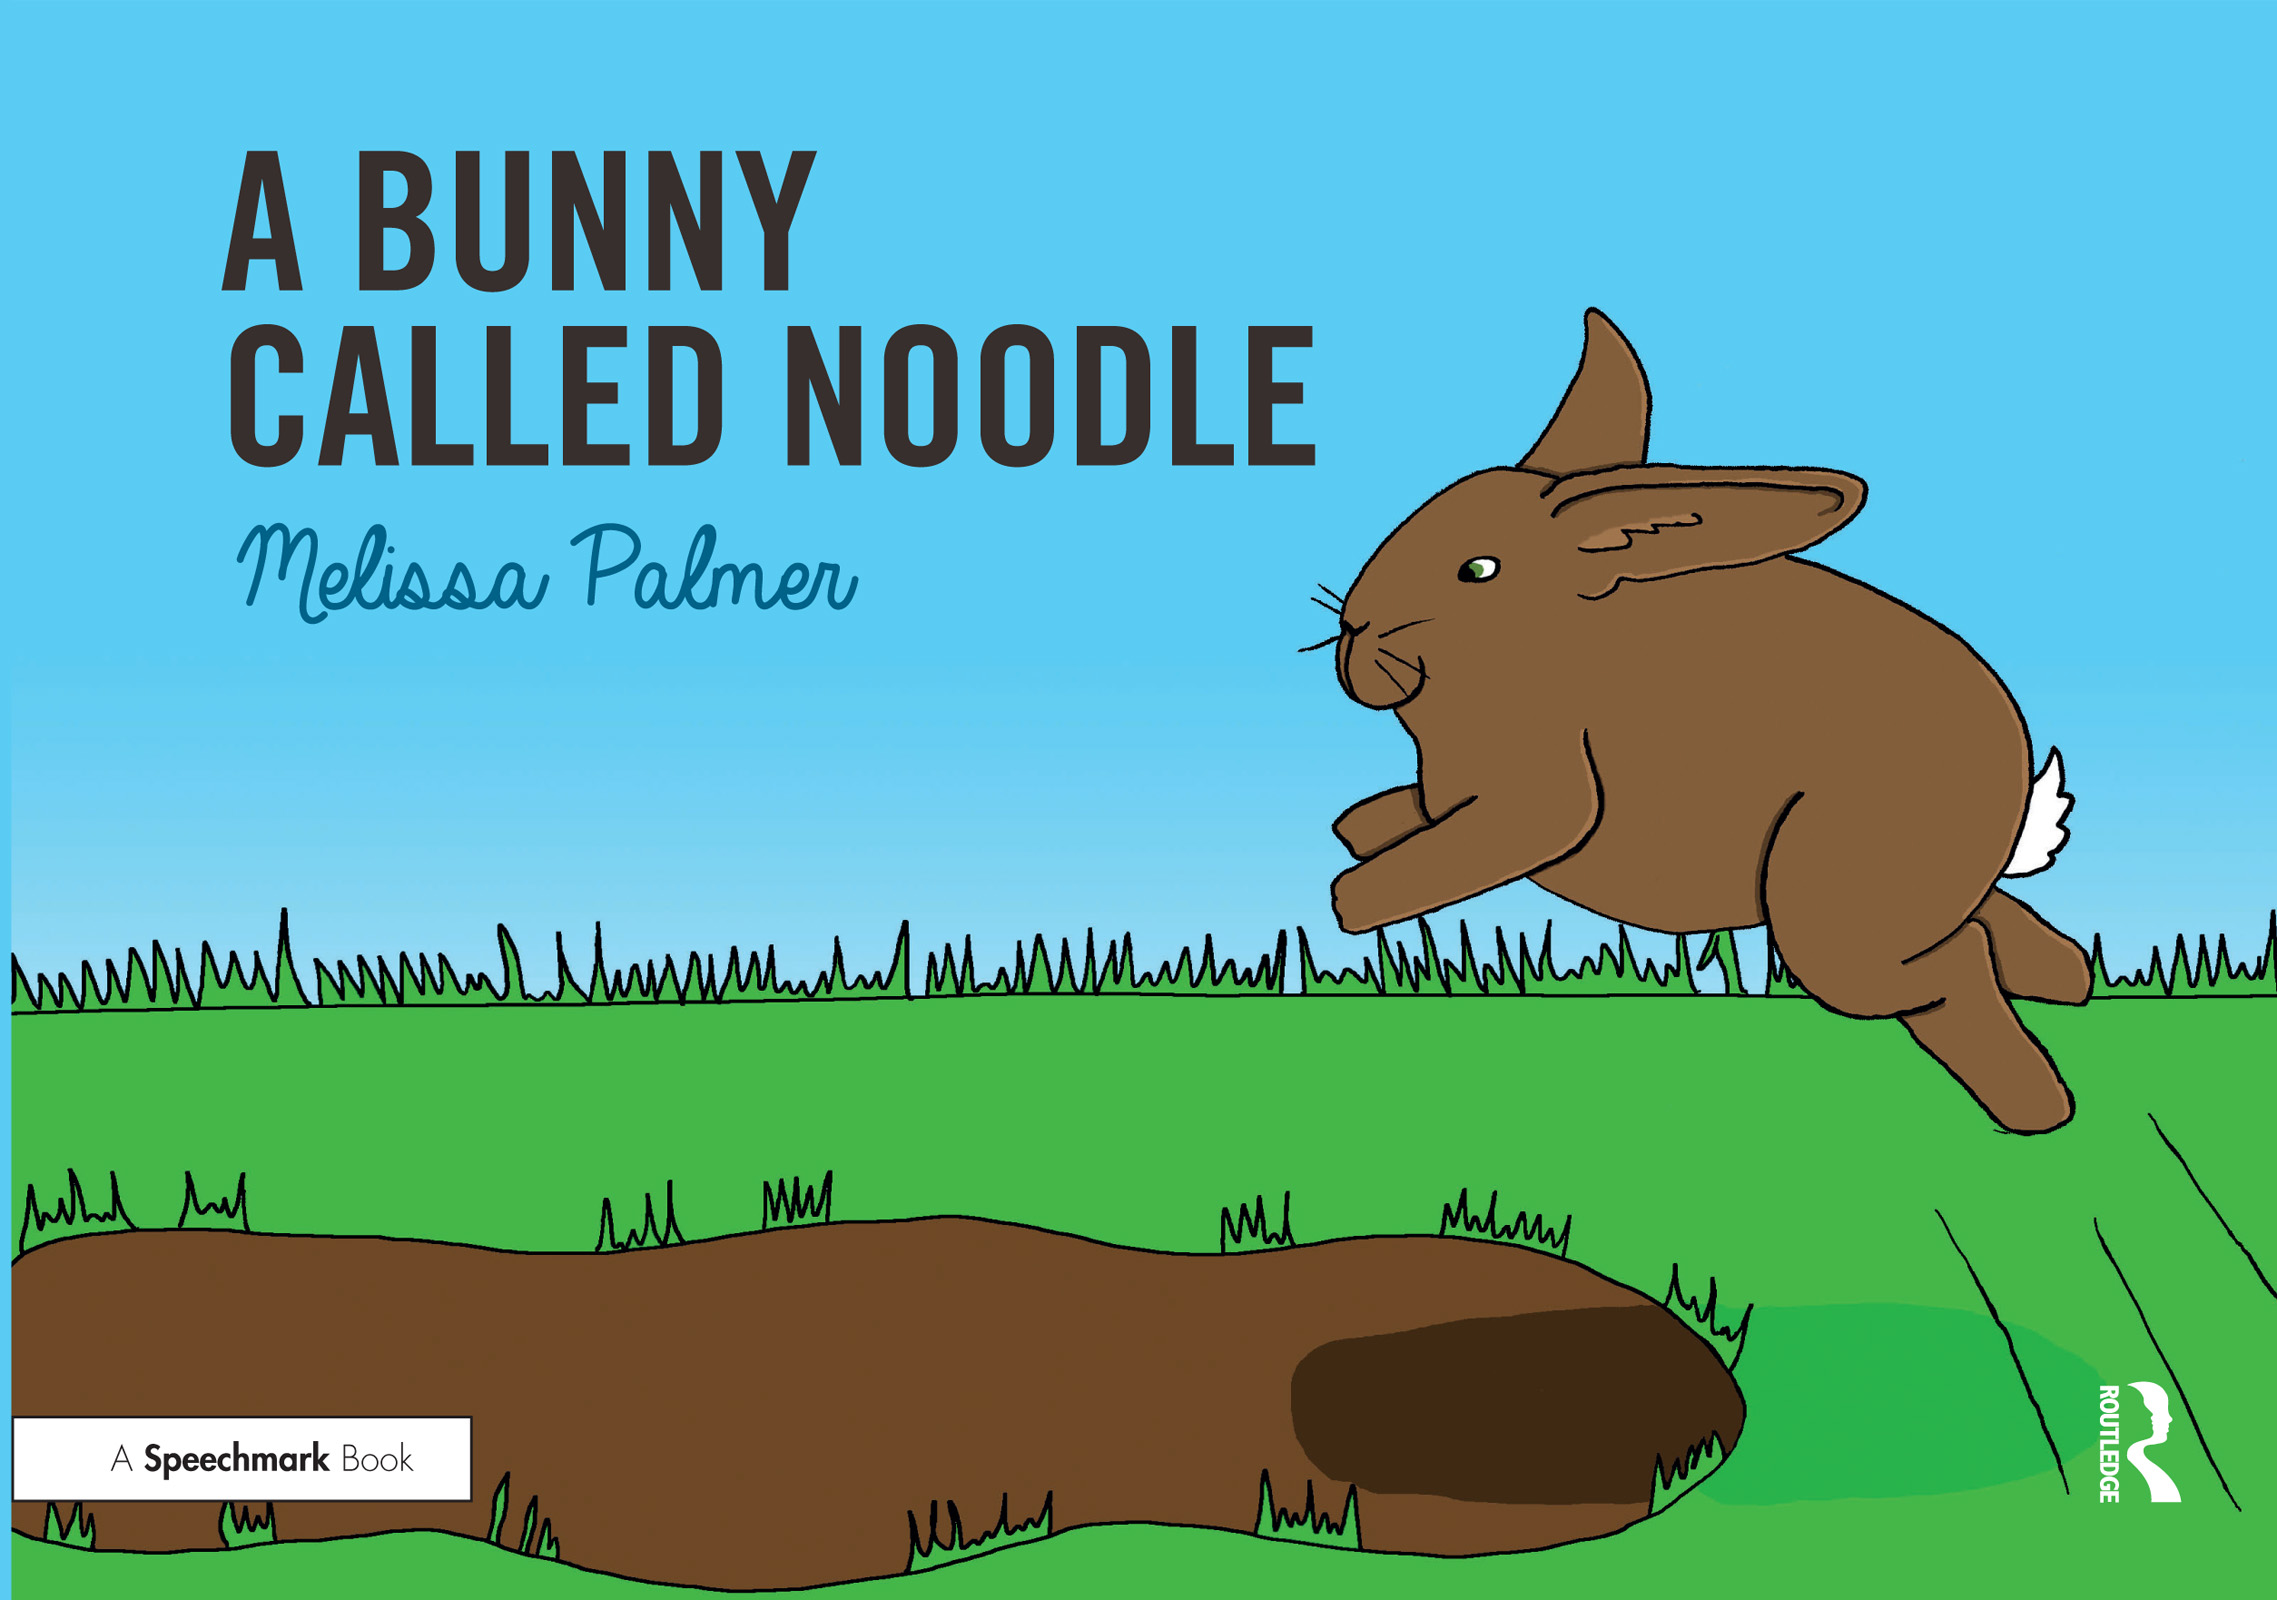 A Bunny Called Noodle